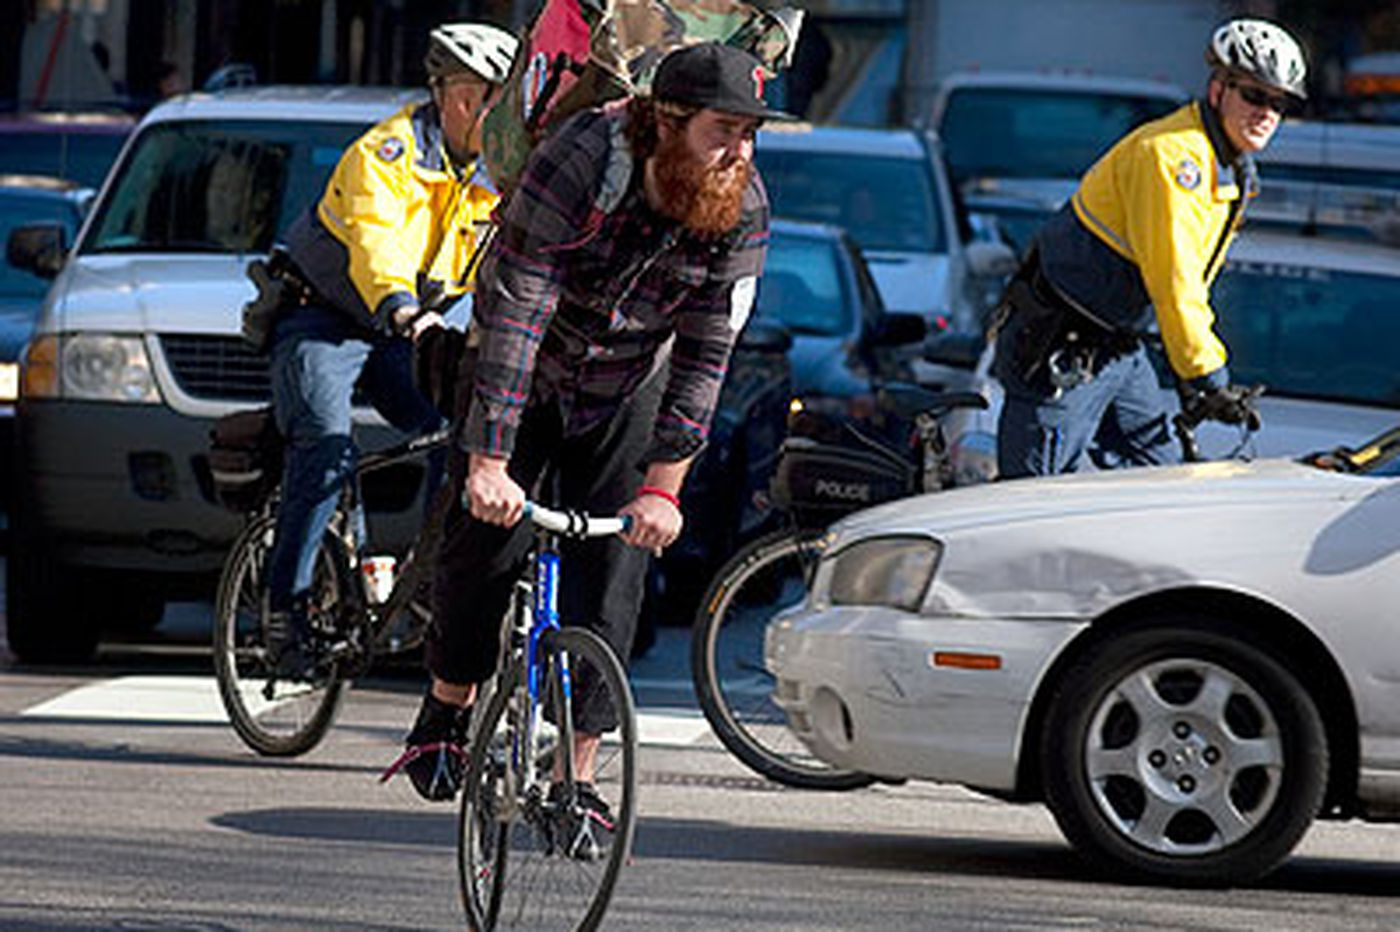 A bicycle blitz in Center City